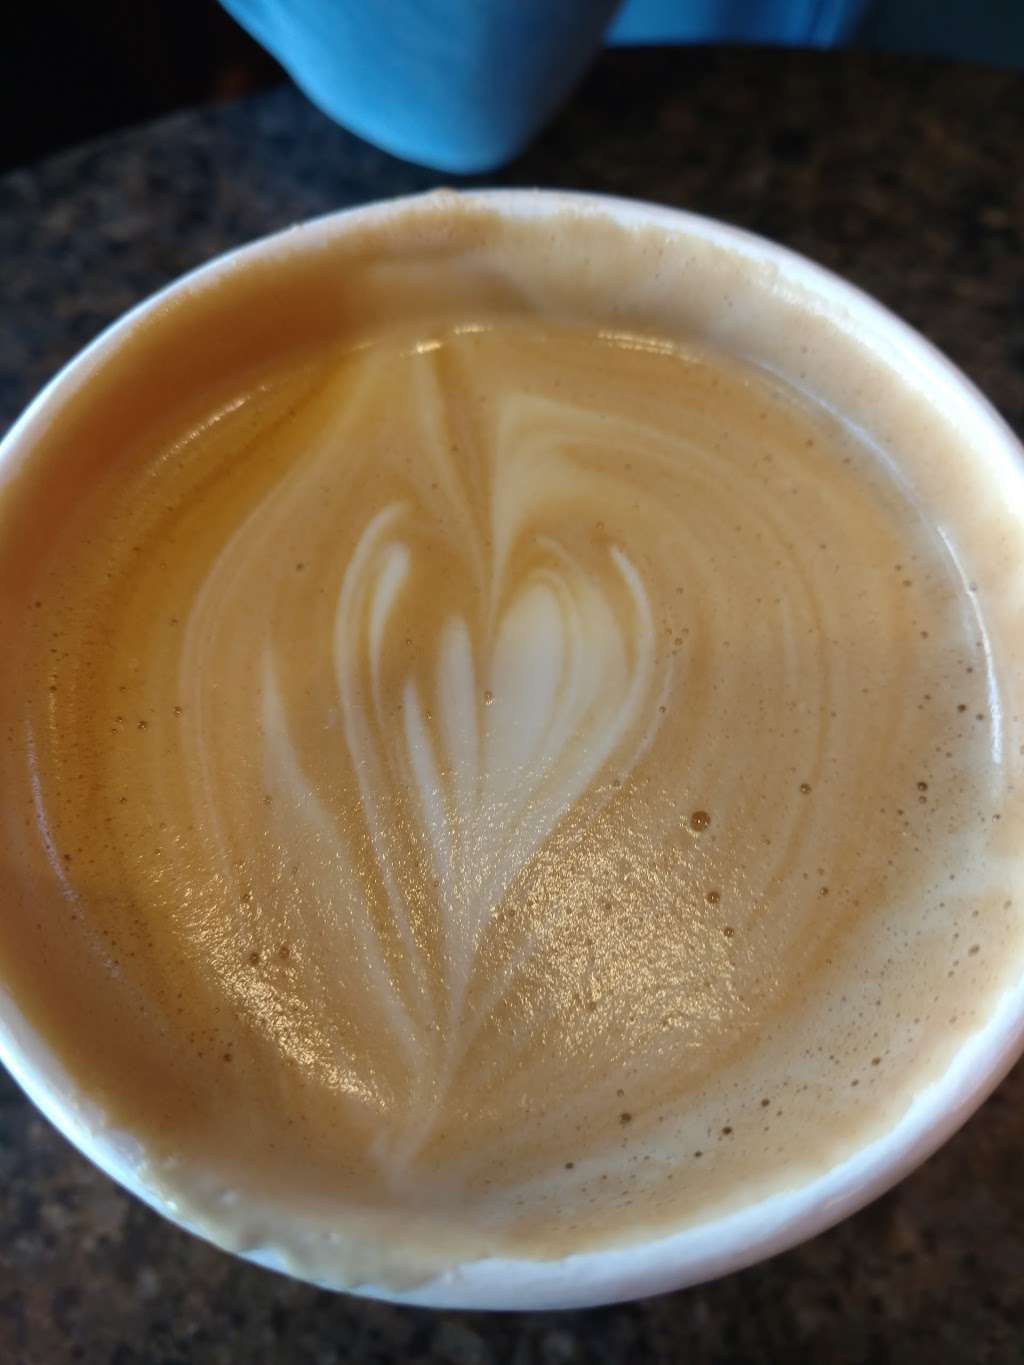 Peets Coffee - cafe    Photo 3 of 10   Address: 23700 El Toro Rd Suite B, Lake Forest, CA 92630, USA   Phone: (949) 420-3500